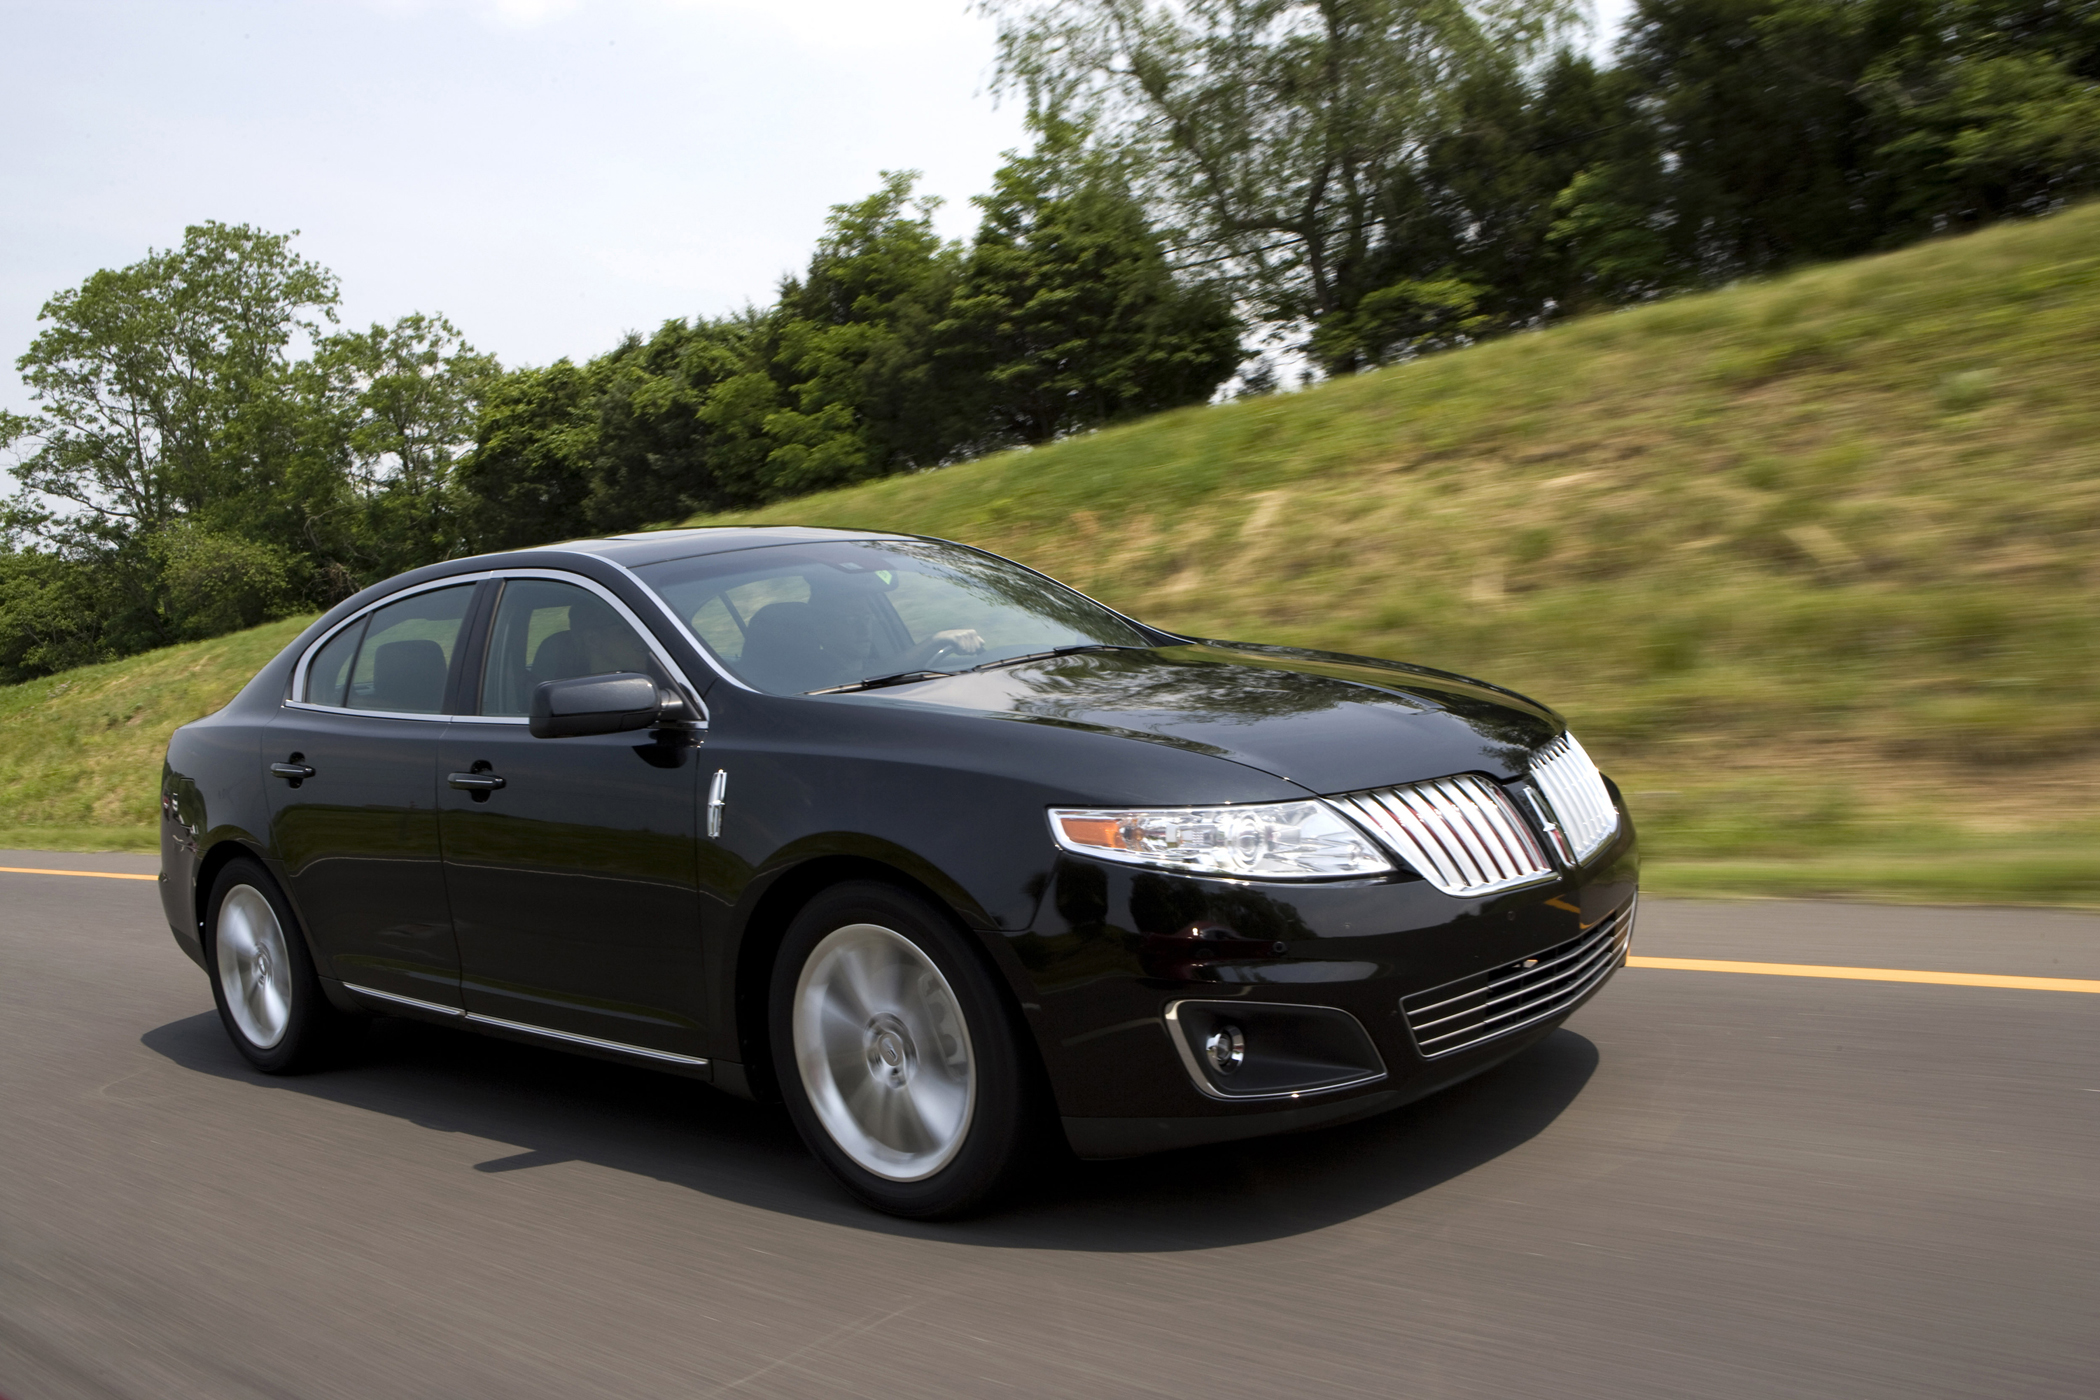 https://www.groovecar.com/media/images/articles/2009/07/new-on-wheels/lincolns-flagship-2009-mks-is-elegant-and-robust/2009-lincoln-mks.jpg